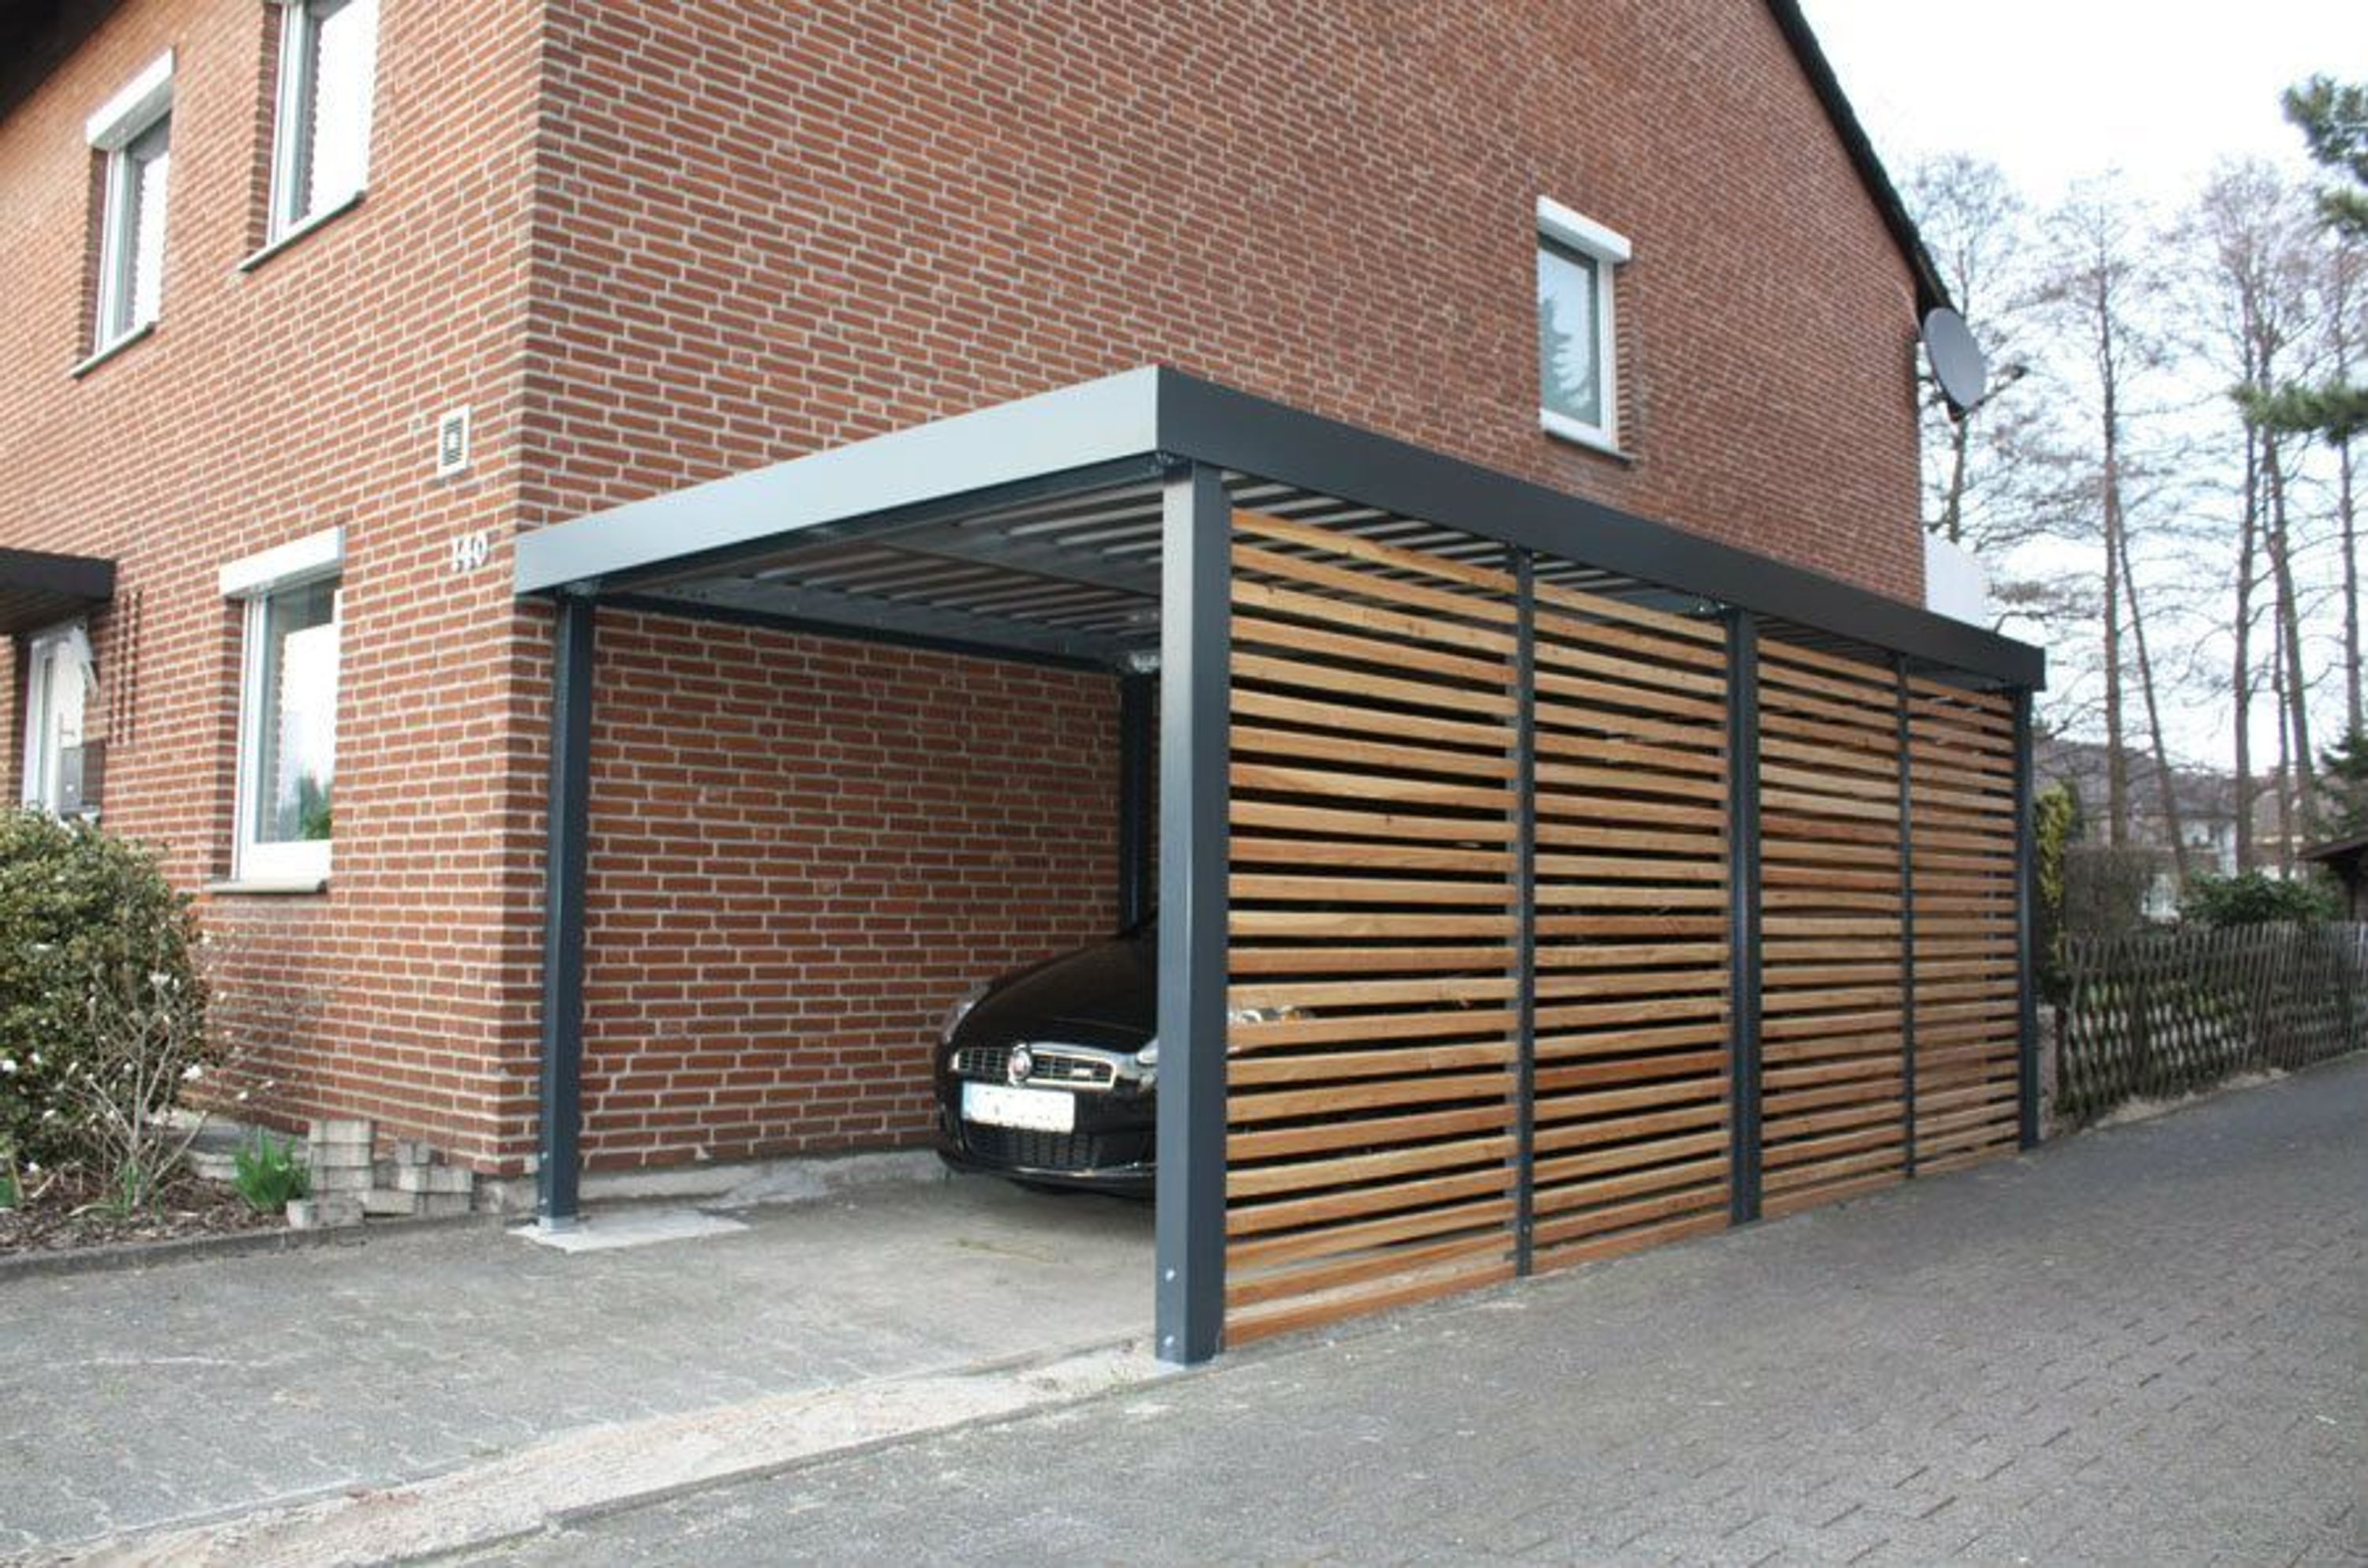 metall carport mit wandelemente holzlattung kaufen bei. Black Bedroom Furniture Sets. Home Design Ideas